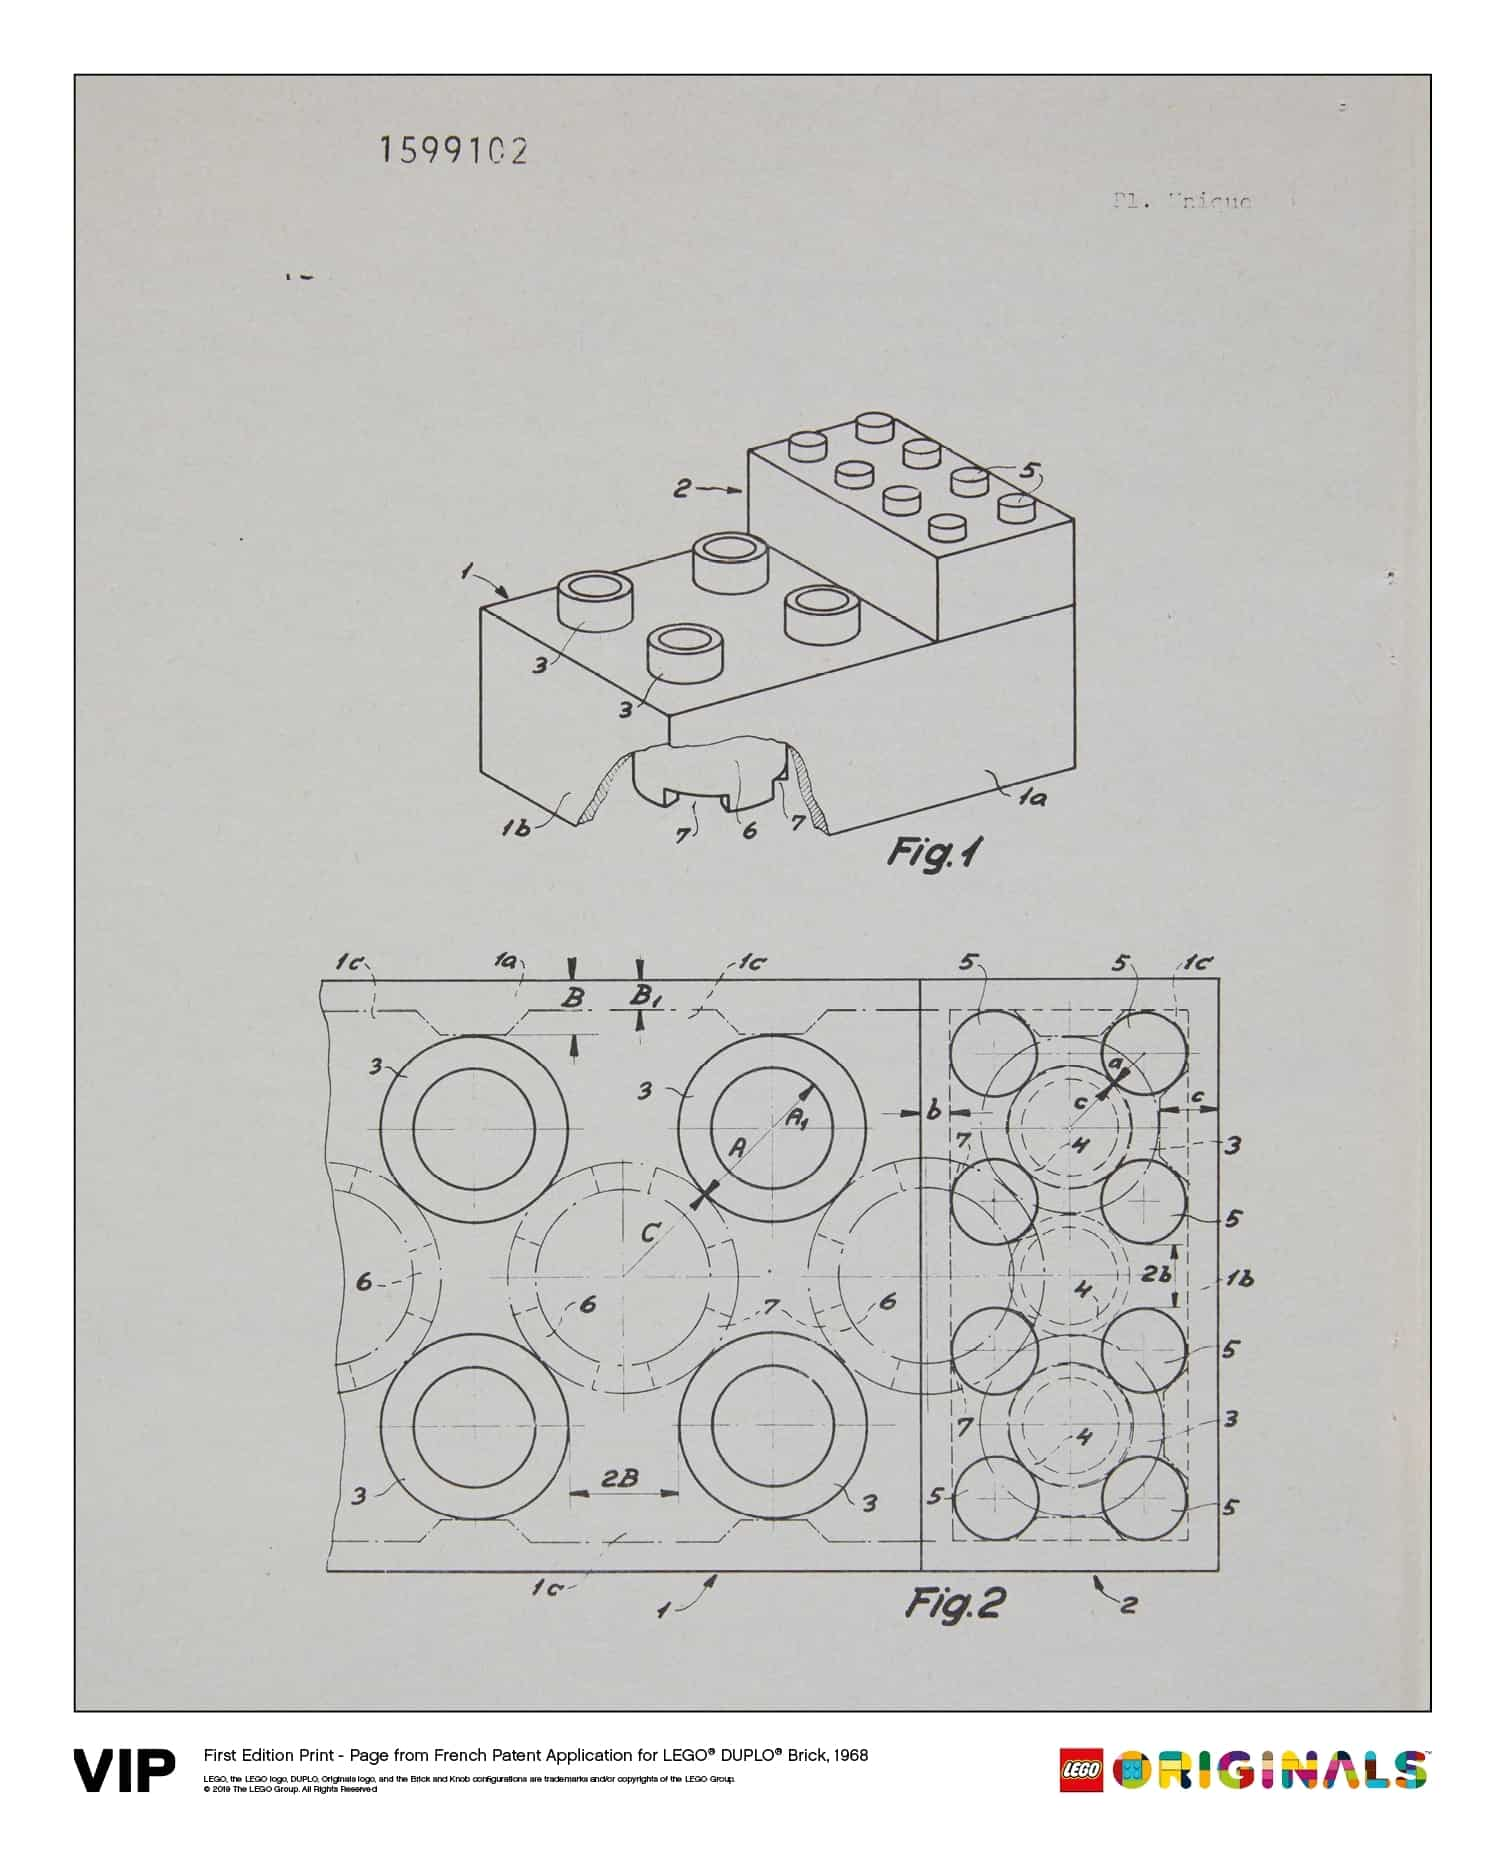 french patent lego duplo brick 1968 5005998